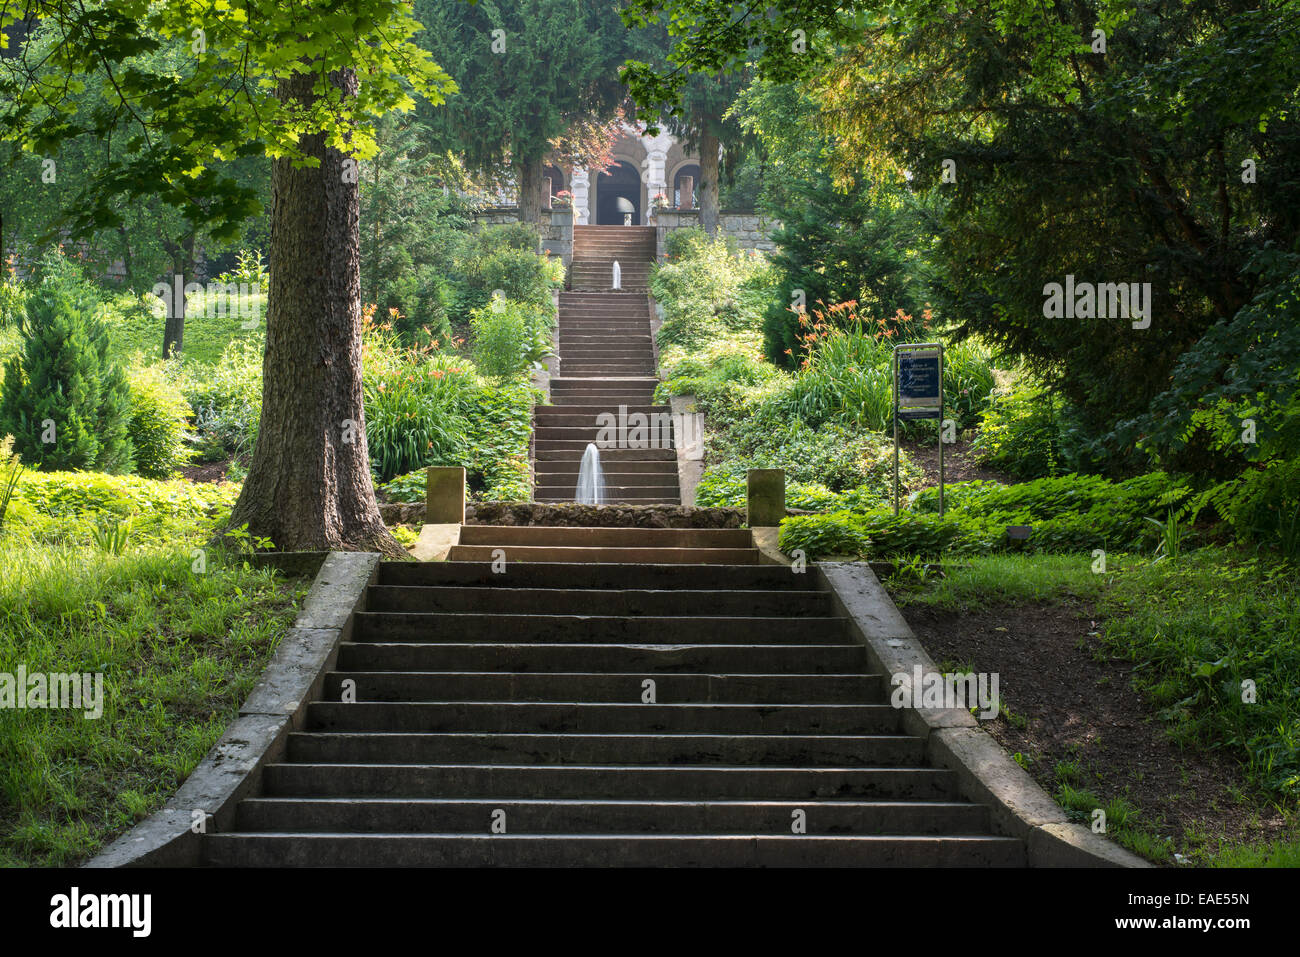 Stairs in the park of Villa Haar, 1885, now an event and conference venue, Ilm Park, Weimar, Thuringia, Germany - Stock Image